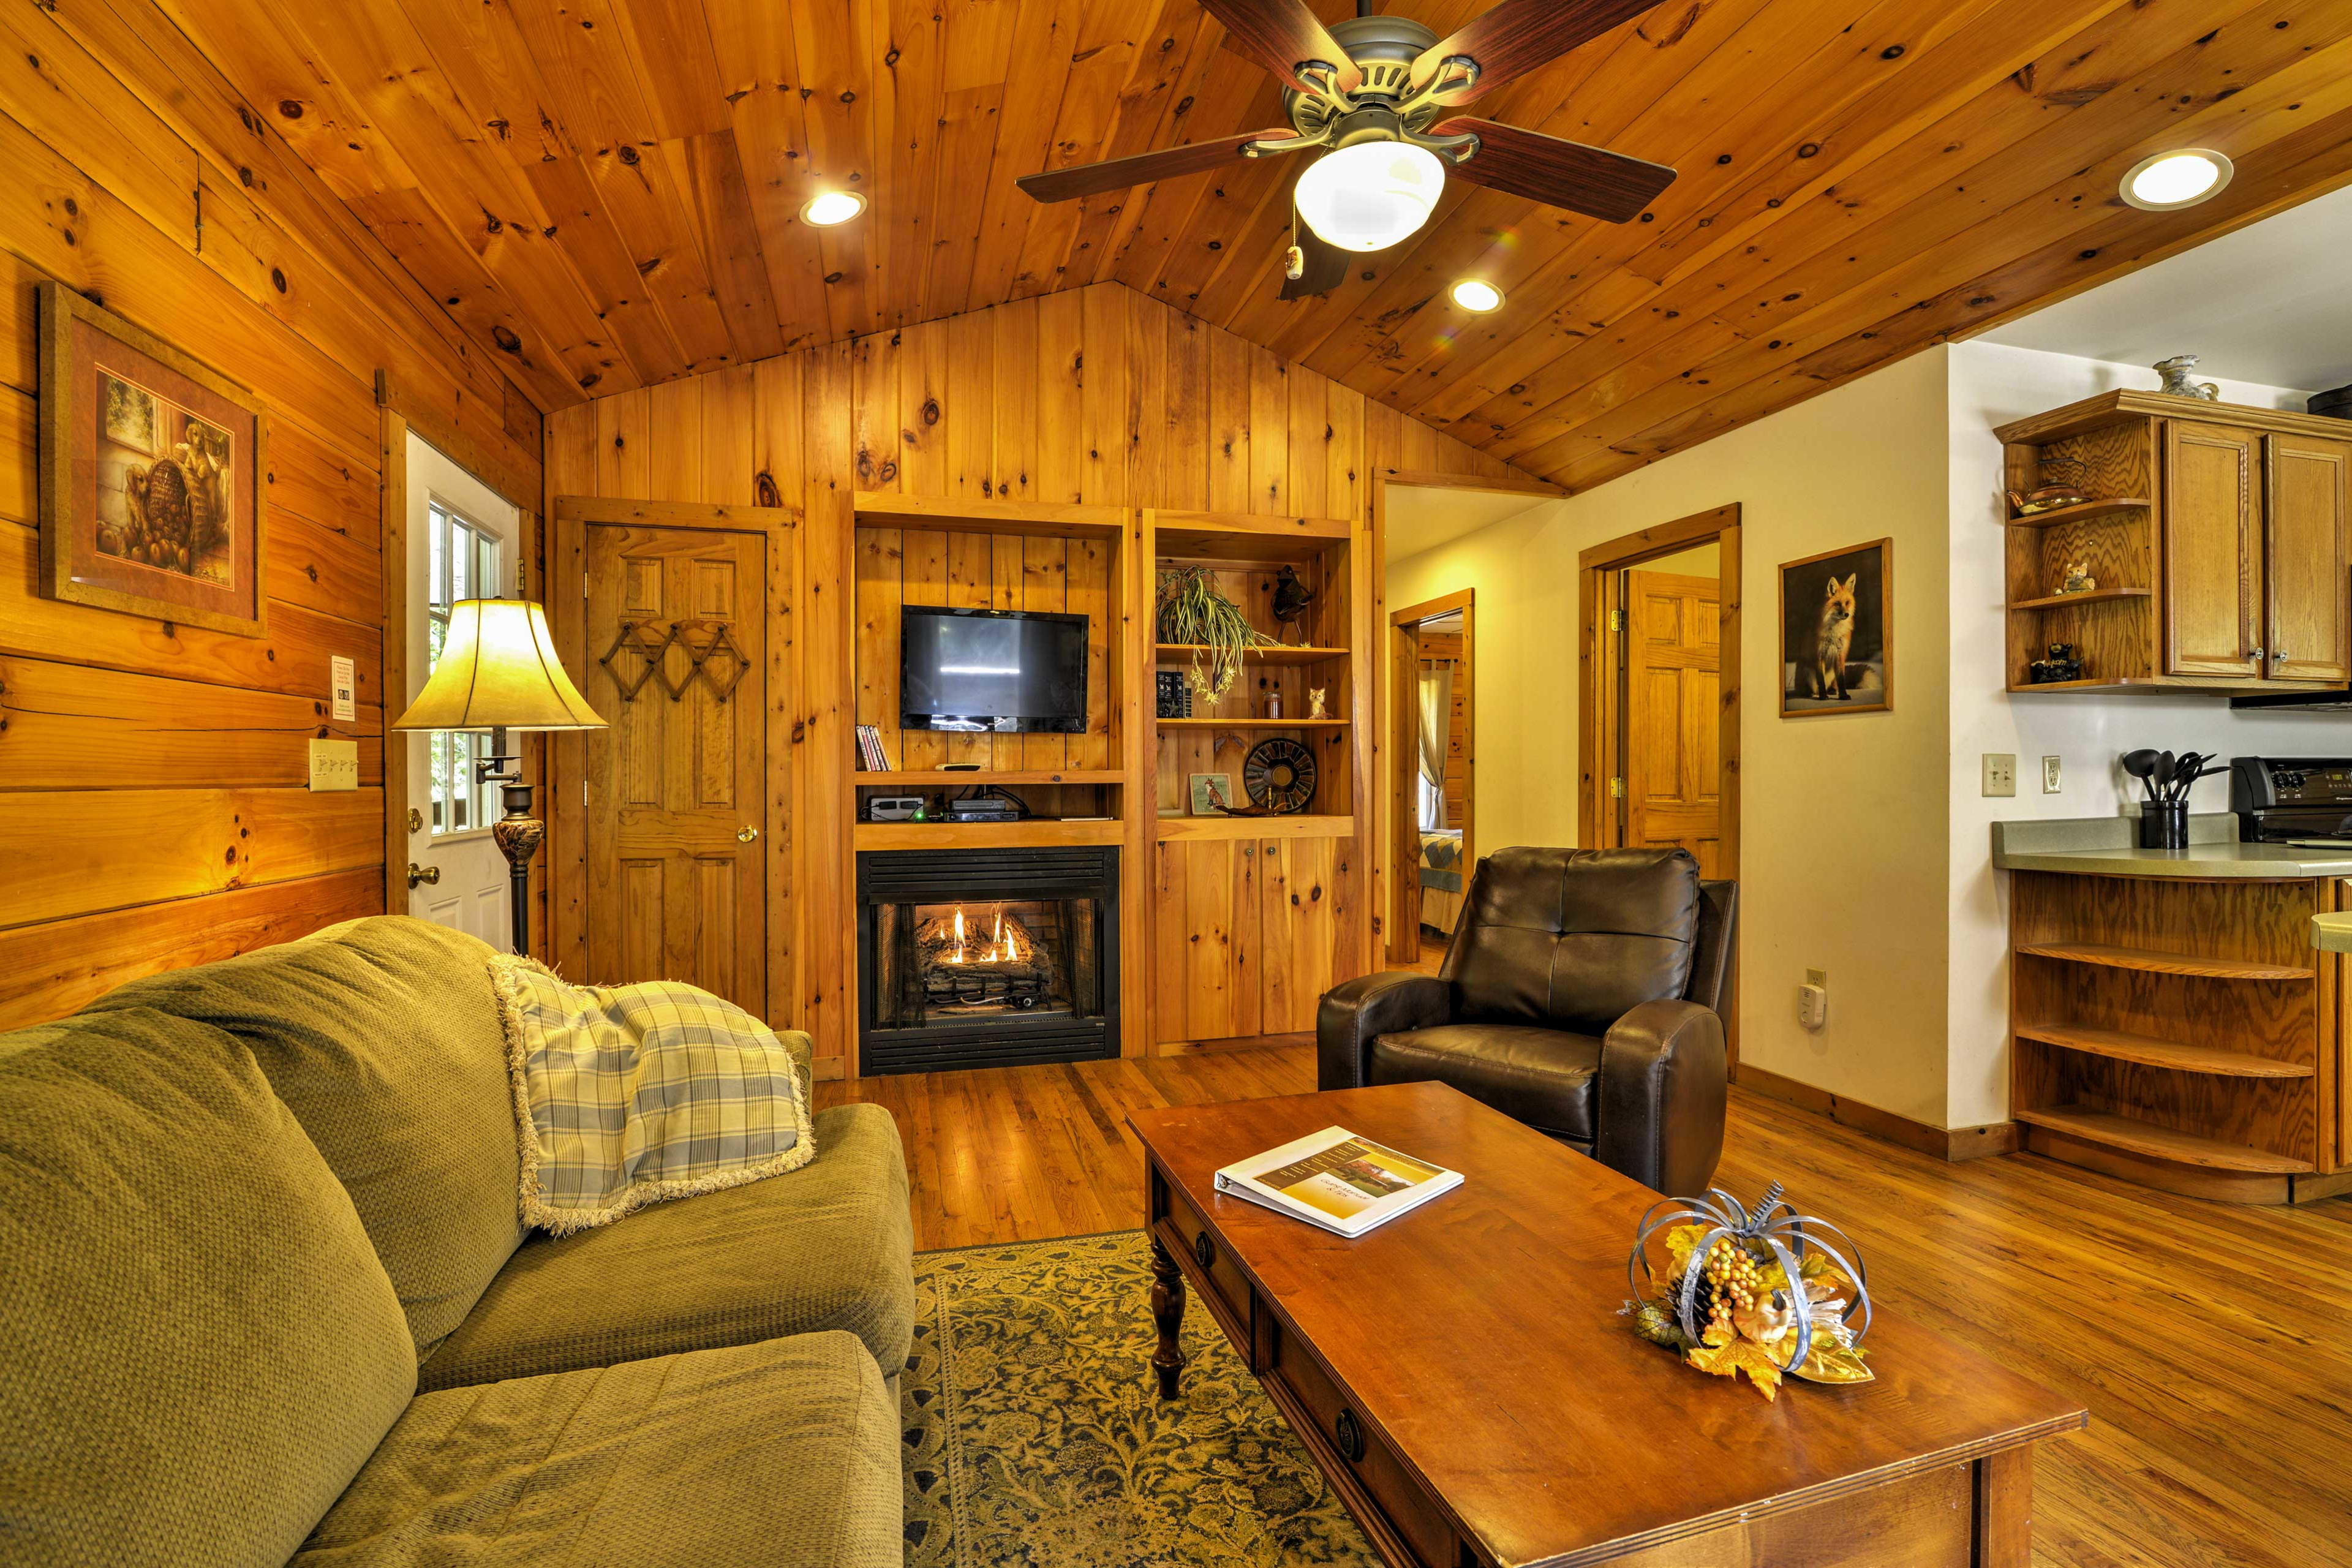 The cabin features an all-wood interior with a traditional cabin atmosphere.